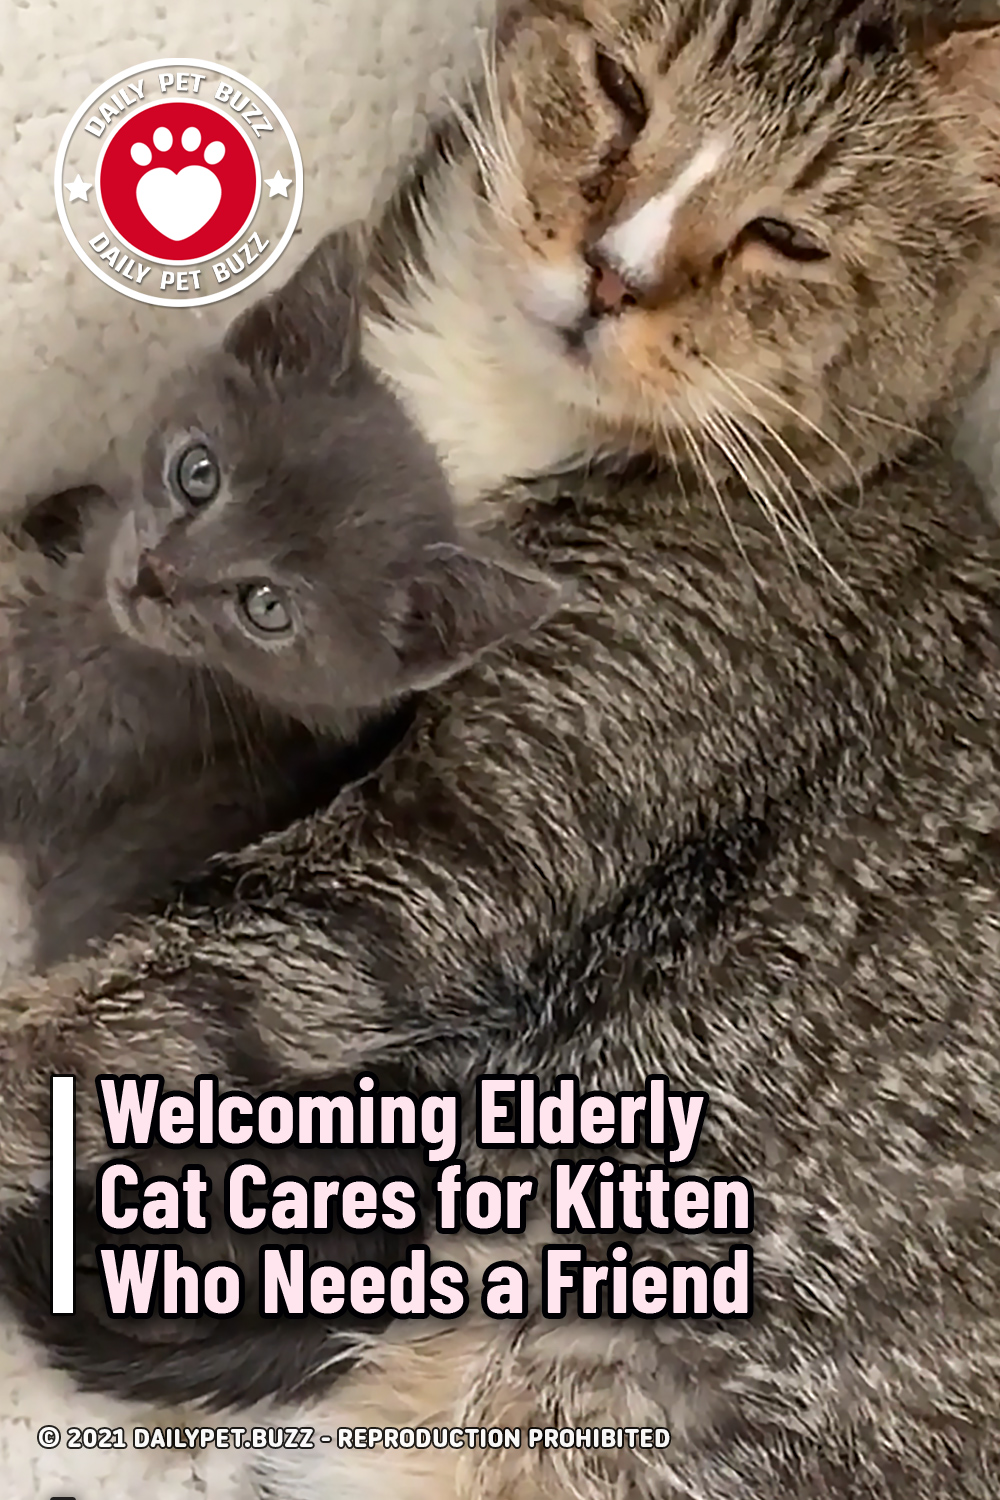 Welcoming Elderly Cat Cares for Kitten Who Needs a Friend